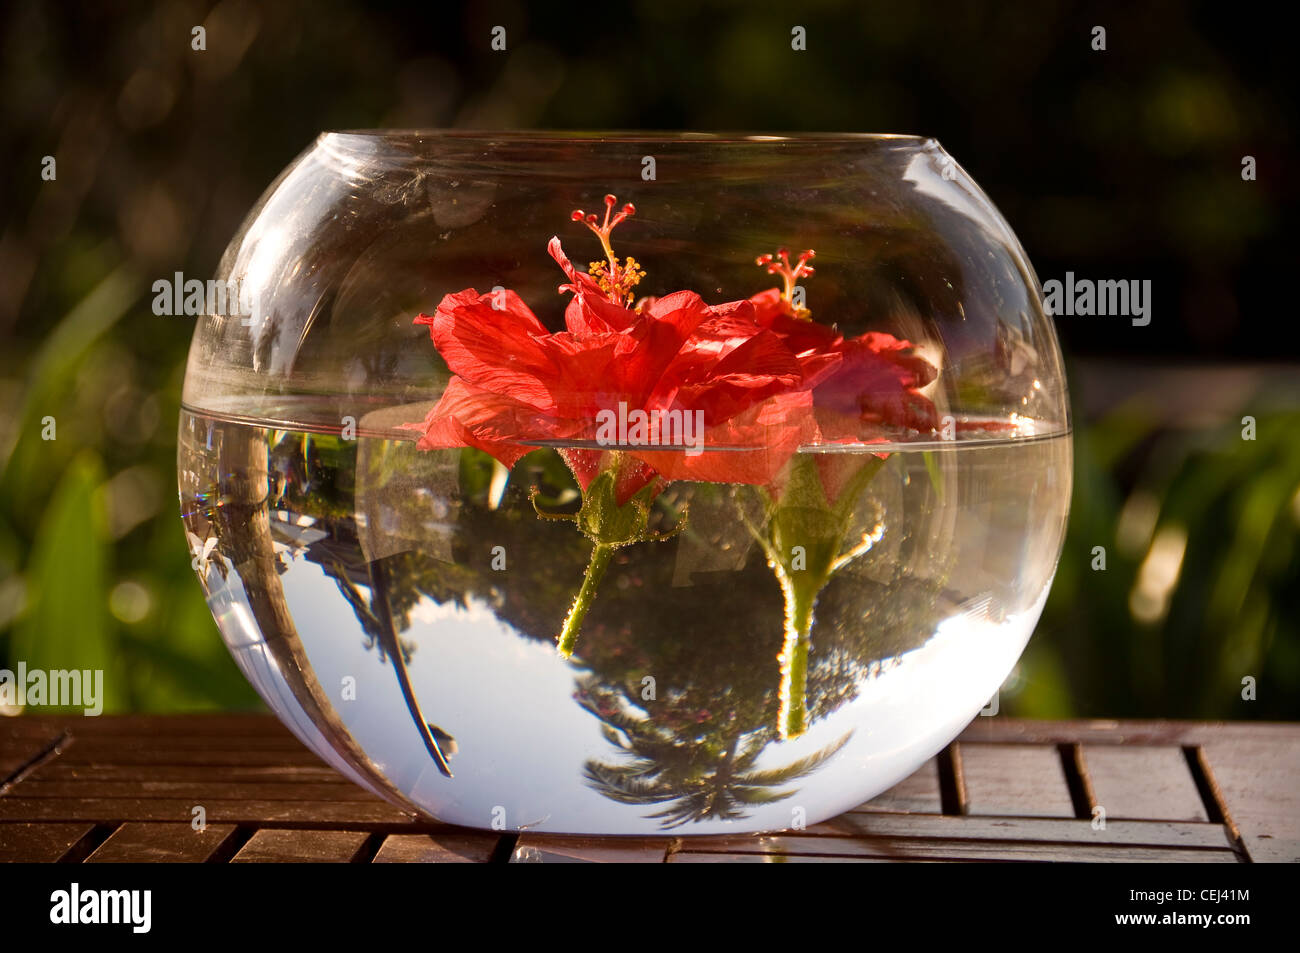 Hibiscus Flower In Vase In Stock Photos Hibiscus Flower In Vase In